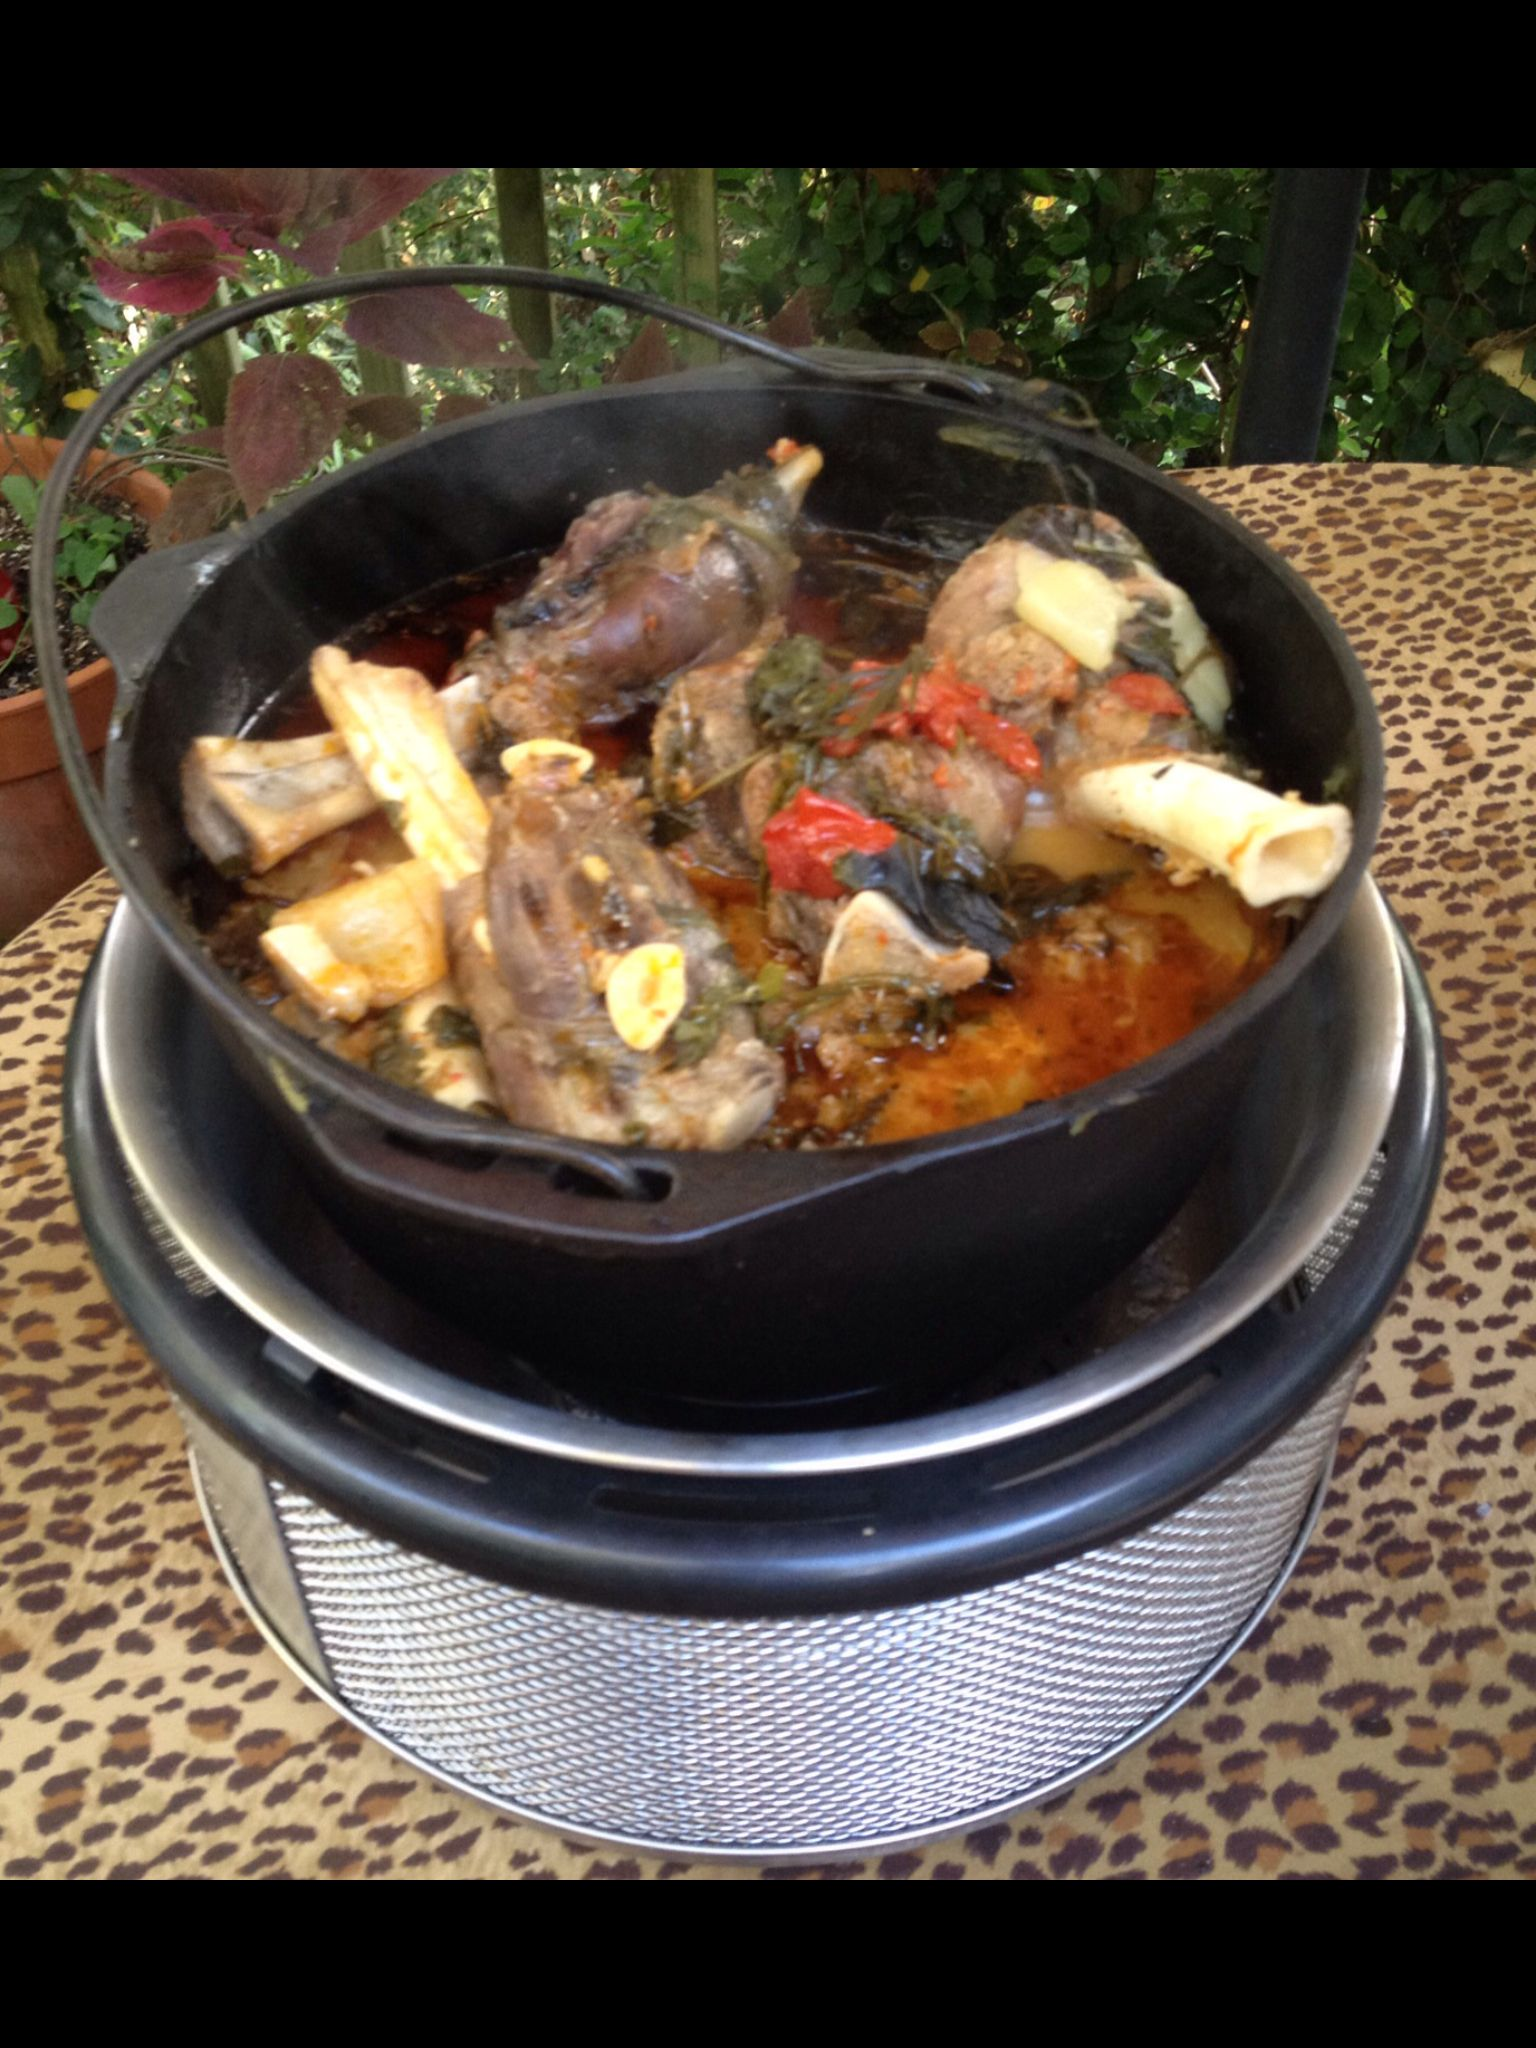 Pizzasteen Weber Dutch Oven With A Lamb Stew On The Cobb Placed Directly On The